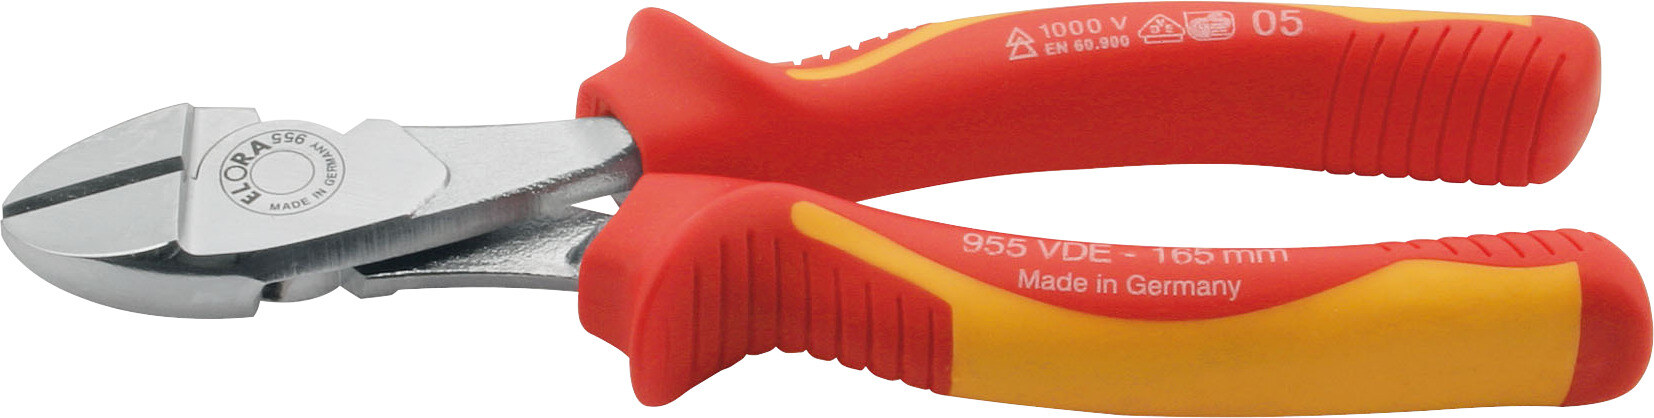 ELORA VDE-Heavy duty diagonal cutter with 2-component safety handles, ELORA-955-160